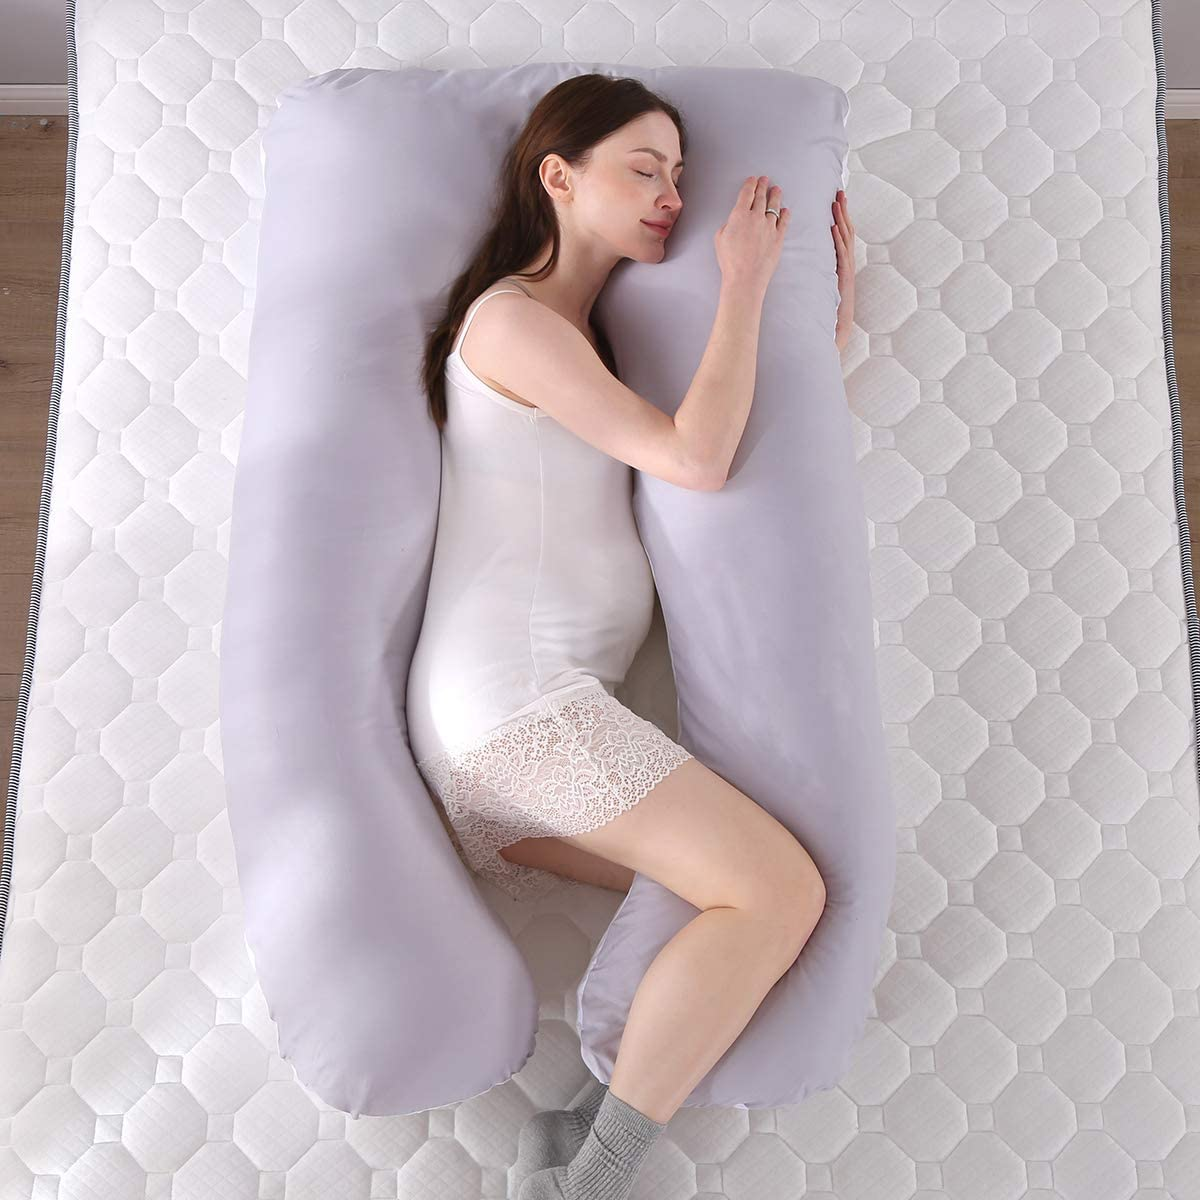 SHANNA Body Pillows for Adults Gray + White Body Pillow maternity support pillow U Shape Pregnancy Pillow with Replaceable and Washable Coverr 70 130CM